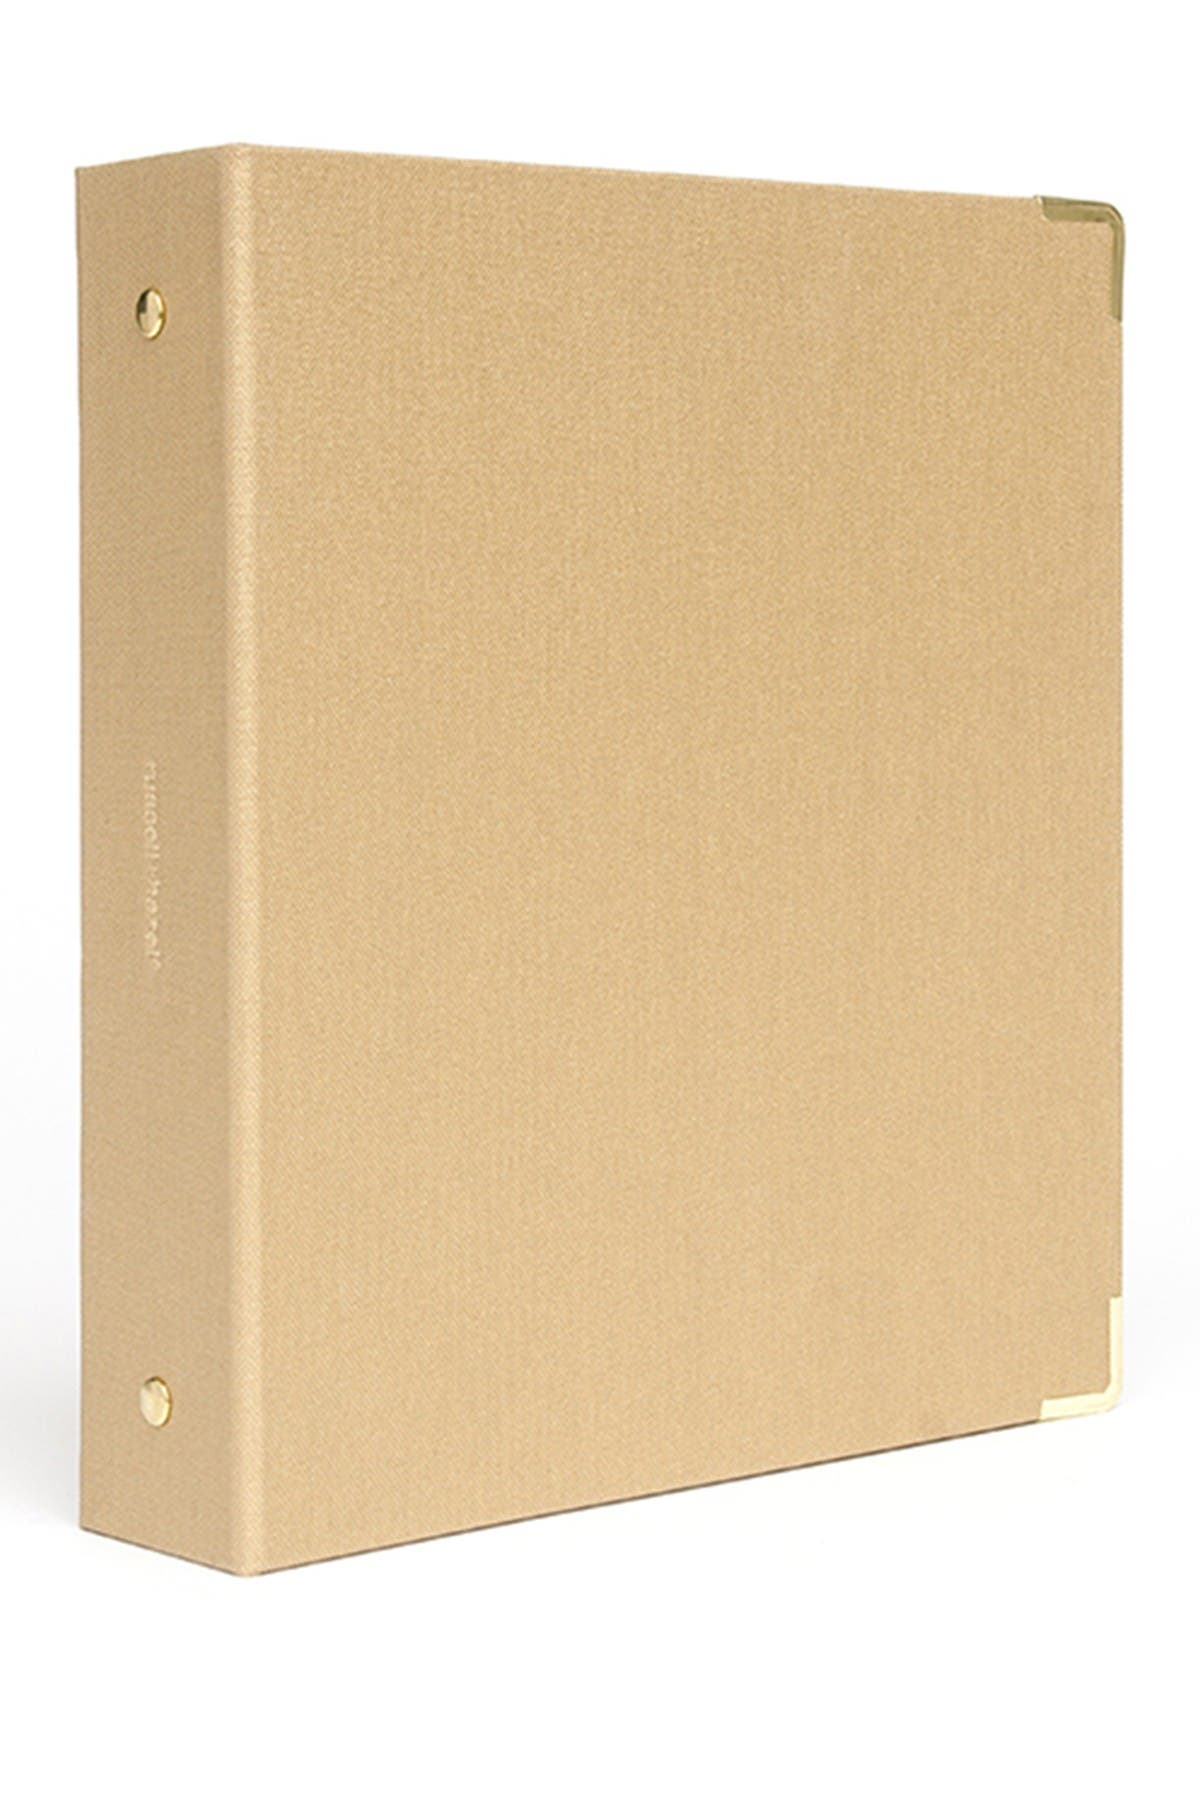 Image of GARTNER STUDIOS Mini Medallion Bookcloth Binder